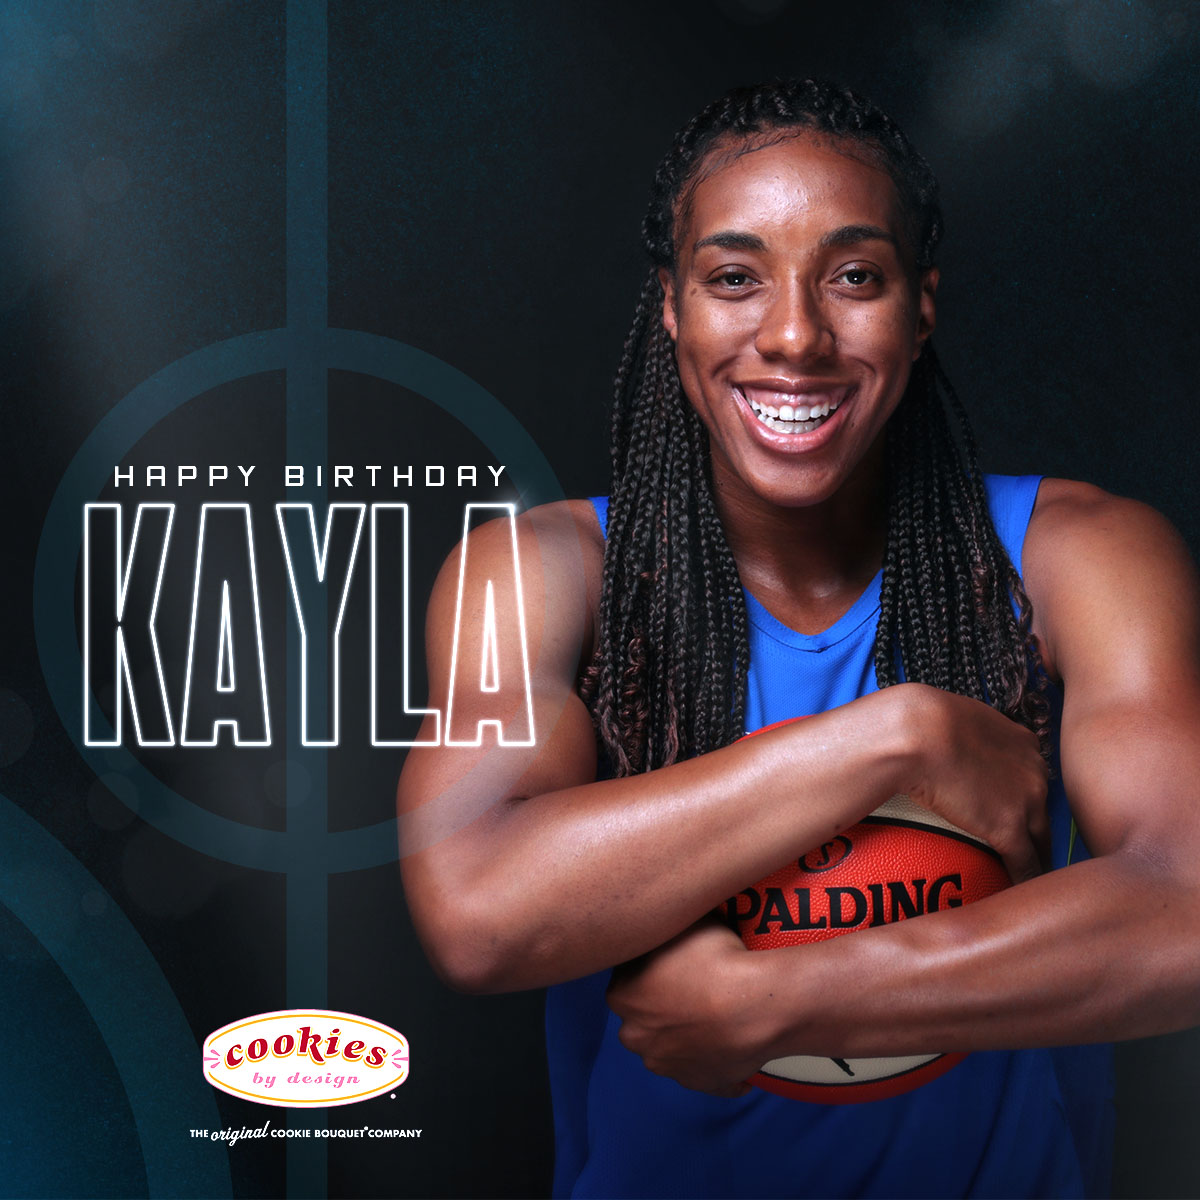 Happy Birthday @KBT_5Blessed! 🥳  Show KT some love with a birthday shoutout! 💙💚  #RISE  #HBD https://t.co/C5lN3mVDdY